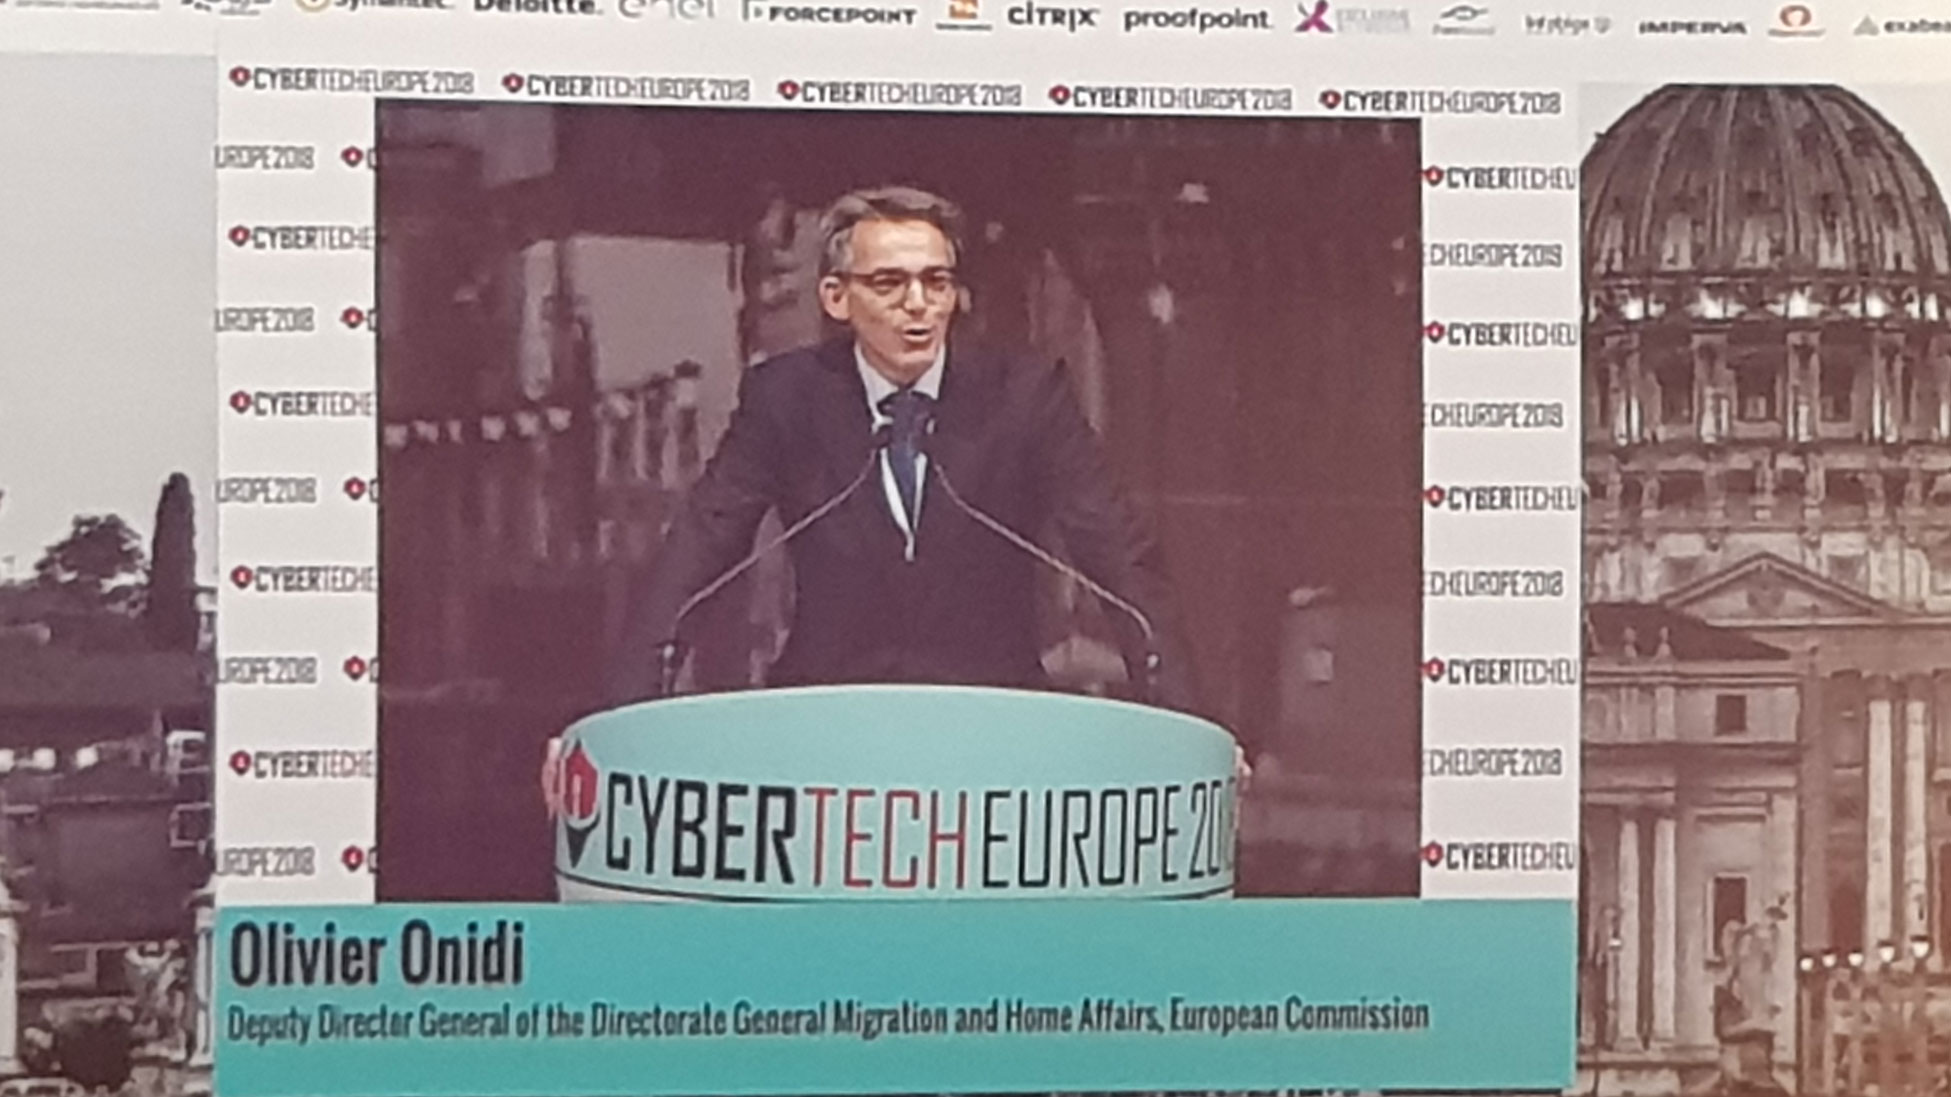 Cybertech Europe 2018 - Olivier Onidi, Deputy Director General of the Directorate General Migration and Home Affairs, European Commission